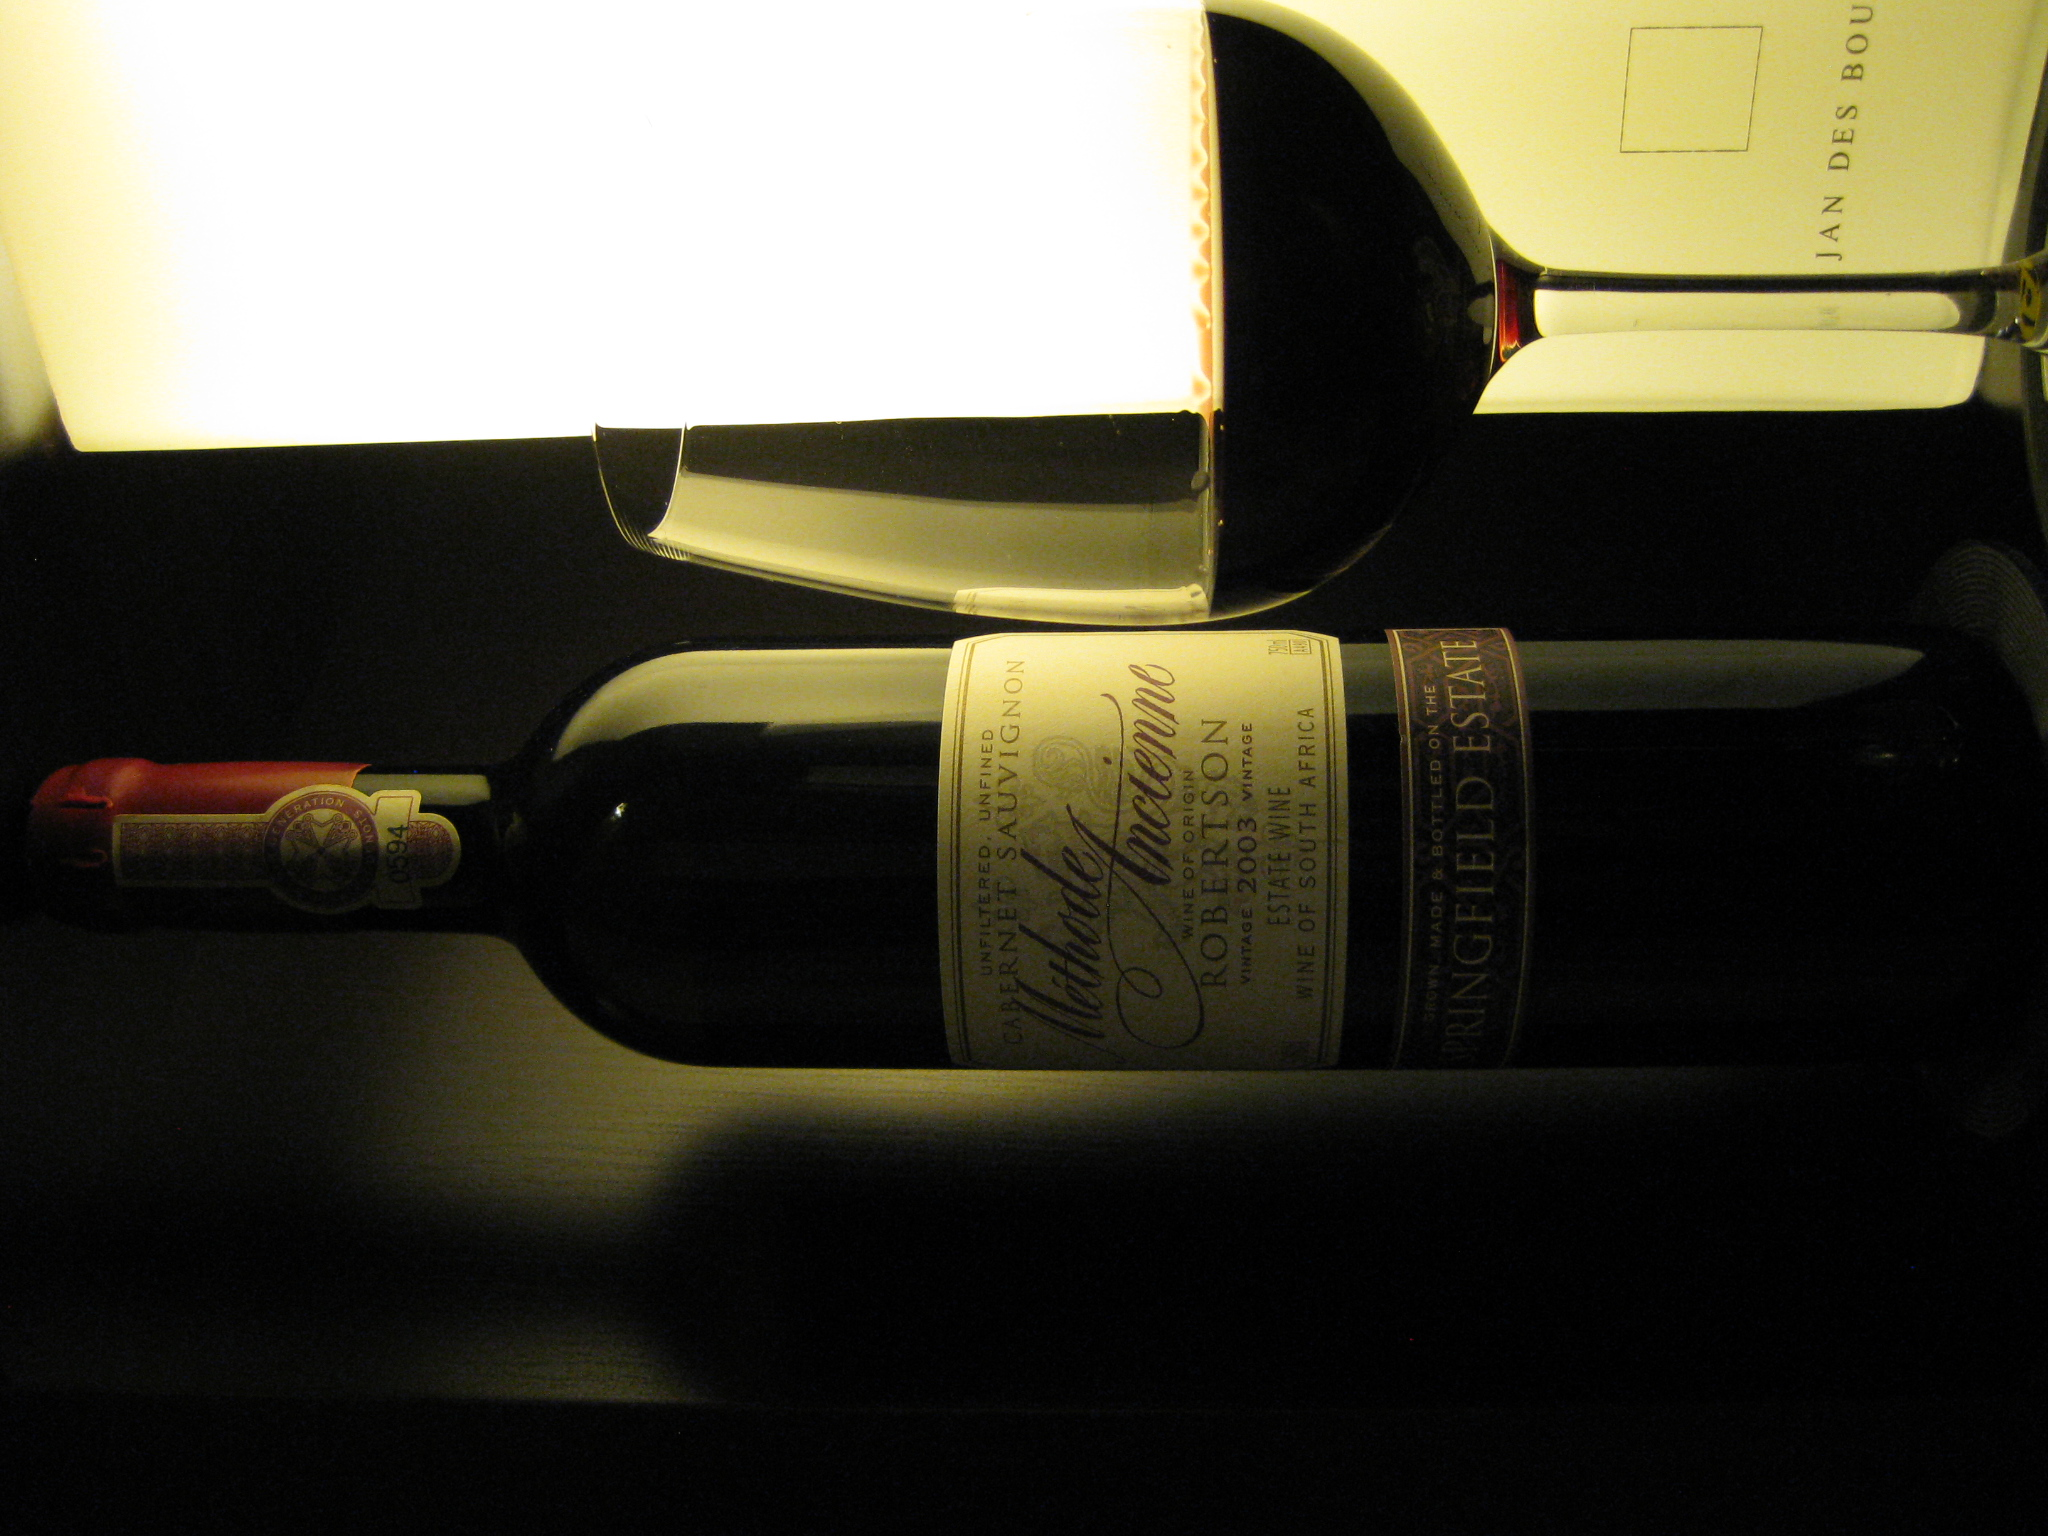 http://foodloader.net/VP_2015-02-20_Cabernet_Sauvignon_Springfield_Estate_Methode_Ancienne_2003.jpg